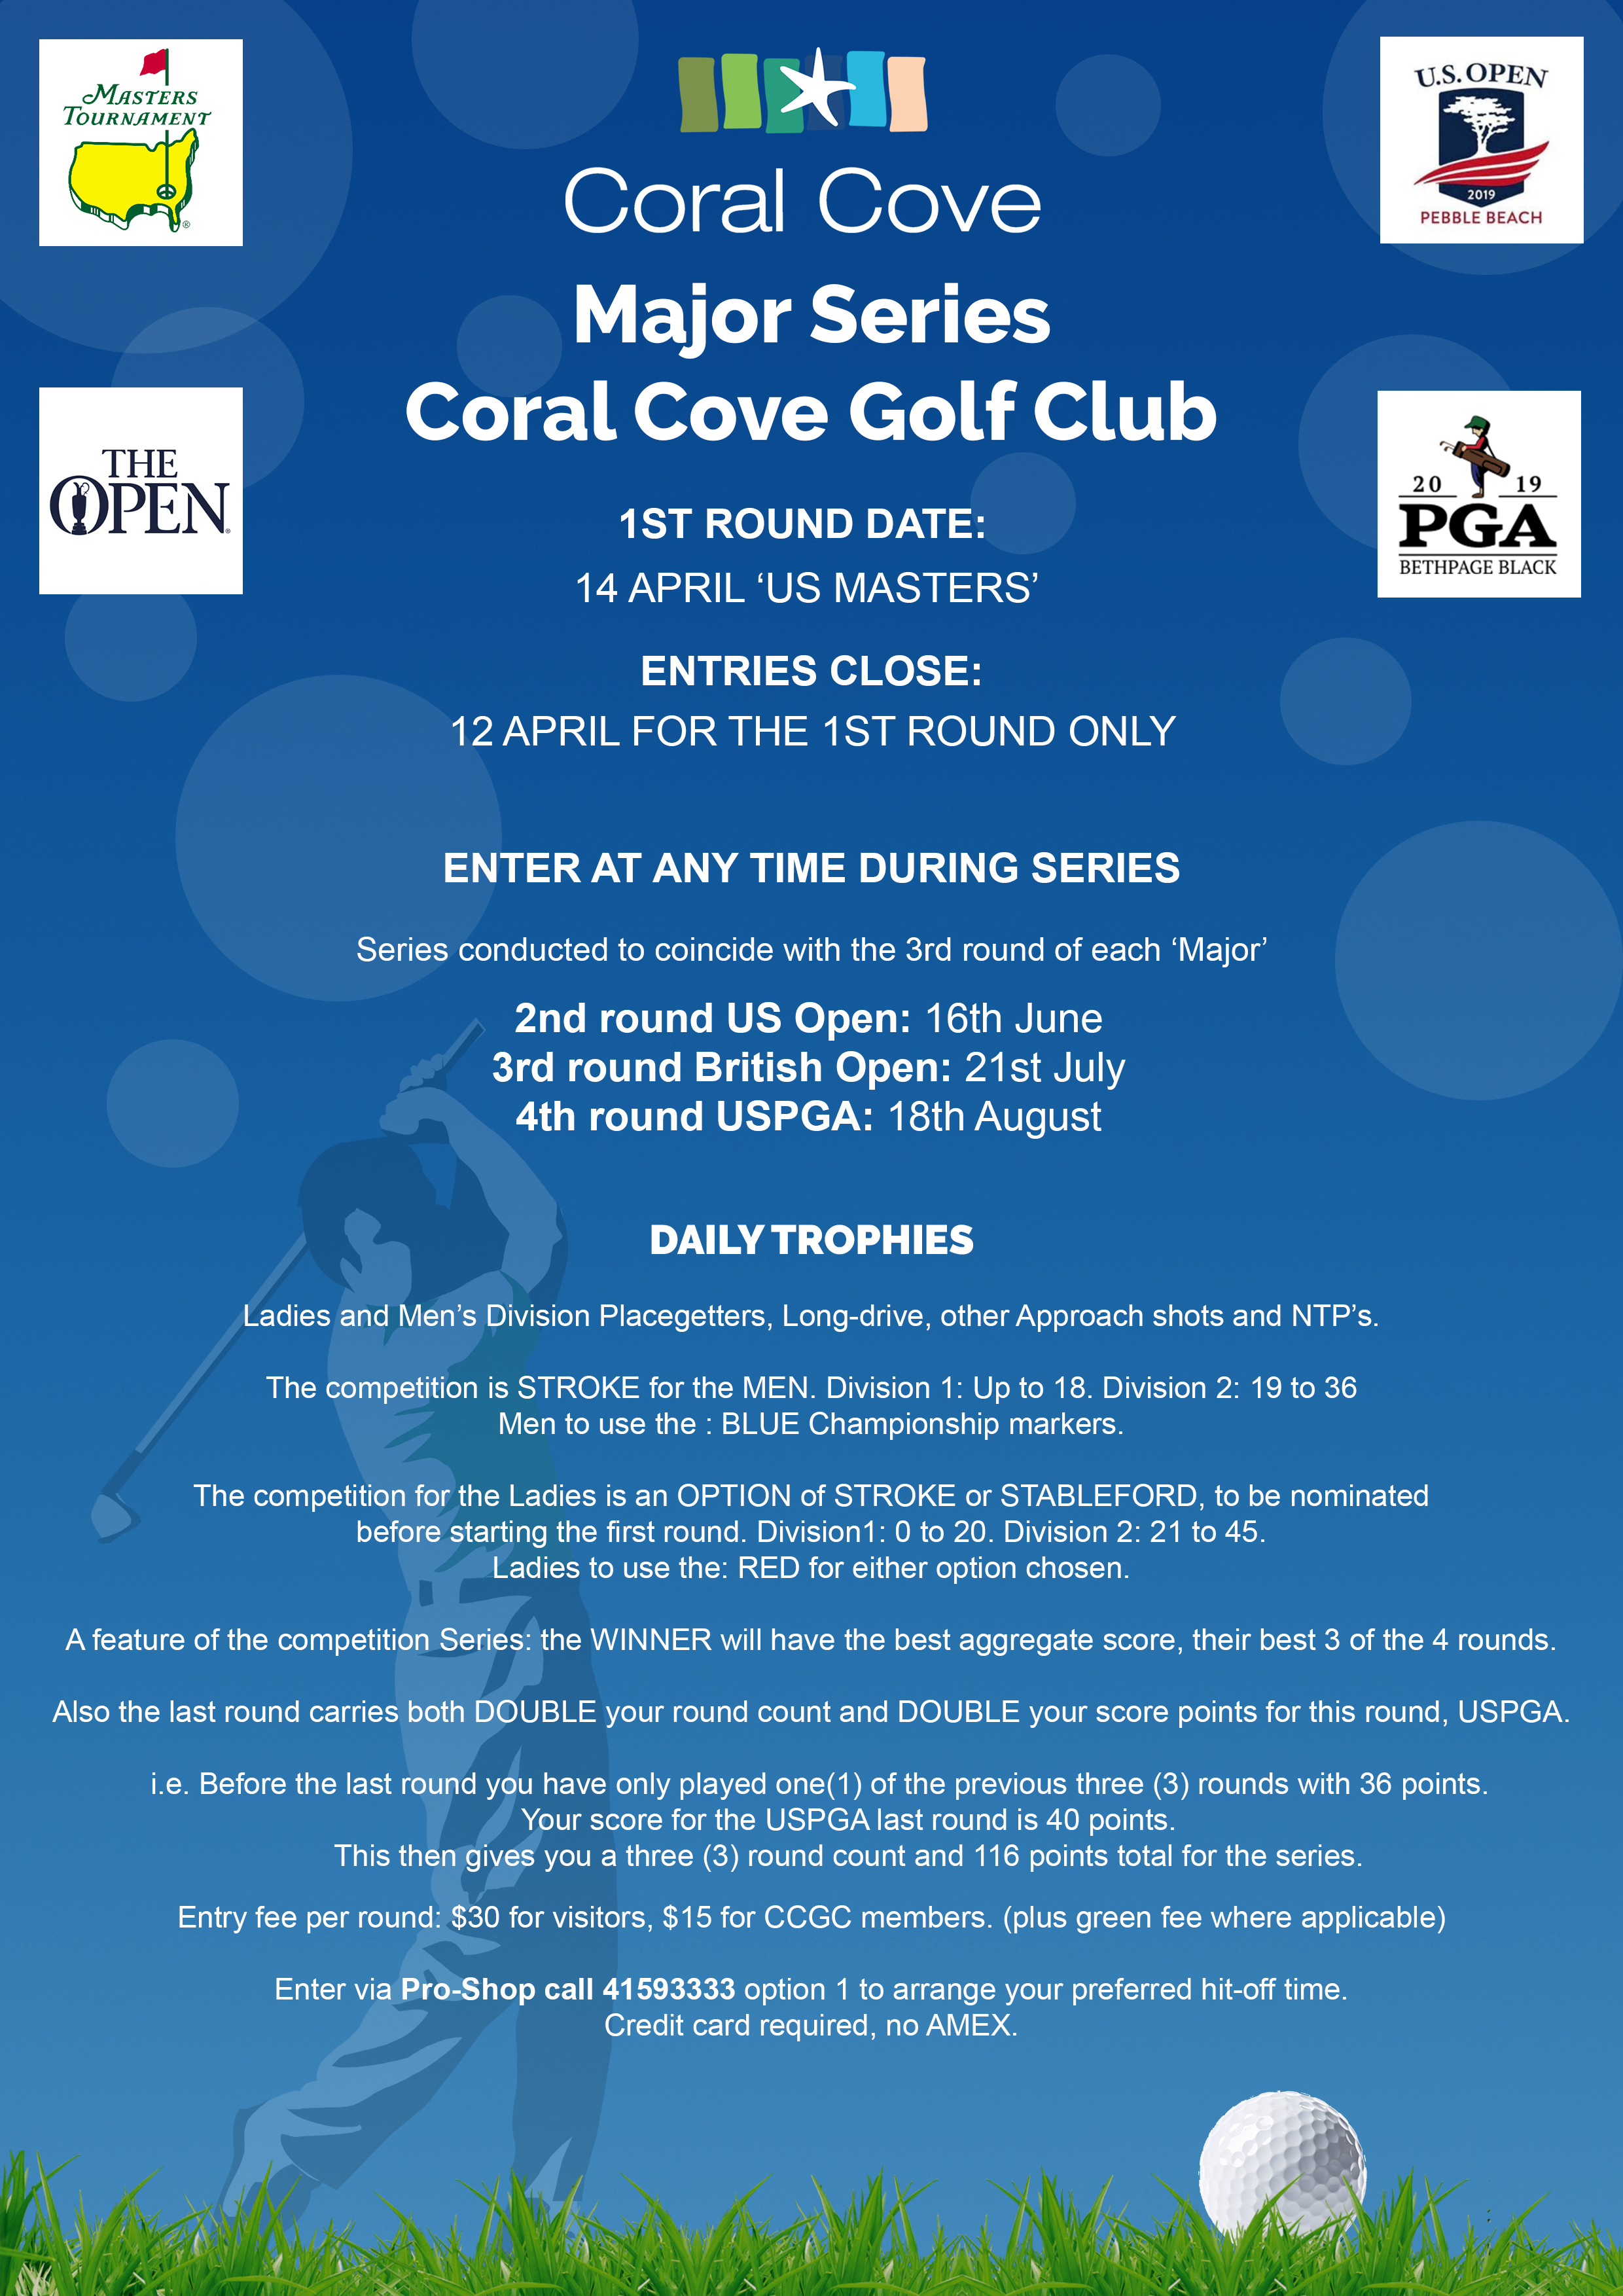 Australia S Best Championship Golf Course Coral Cove Golf Club Resort